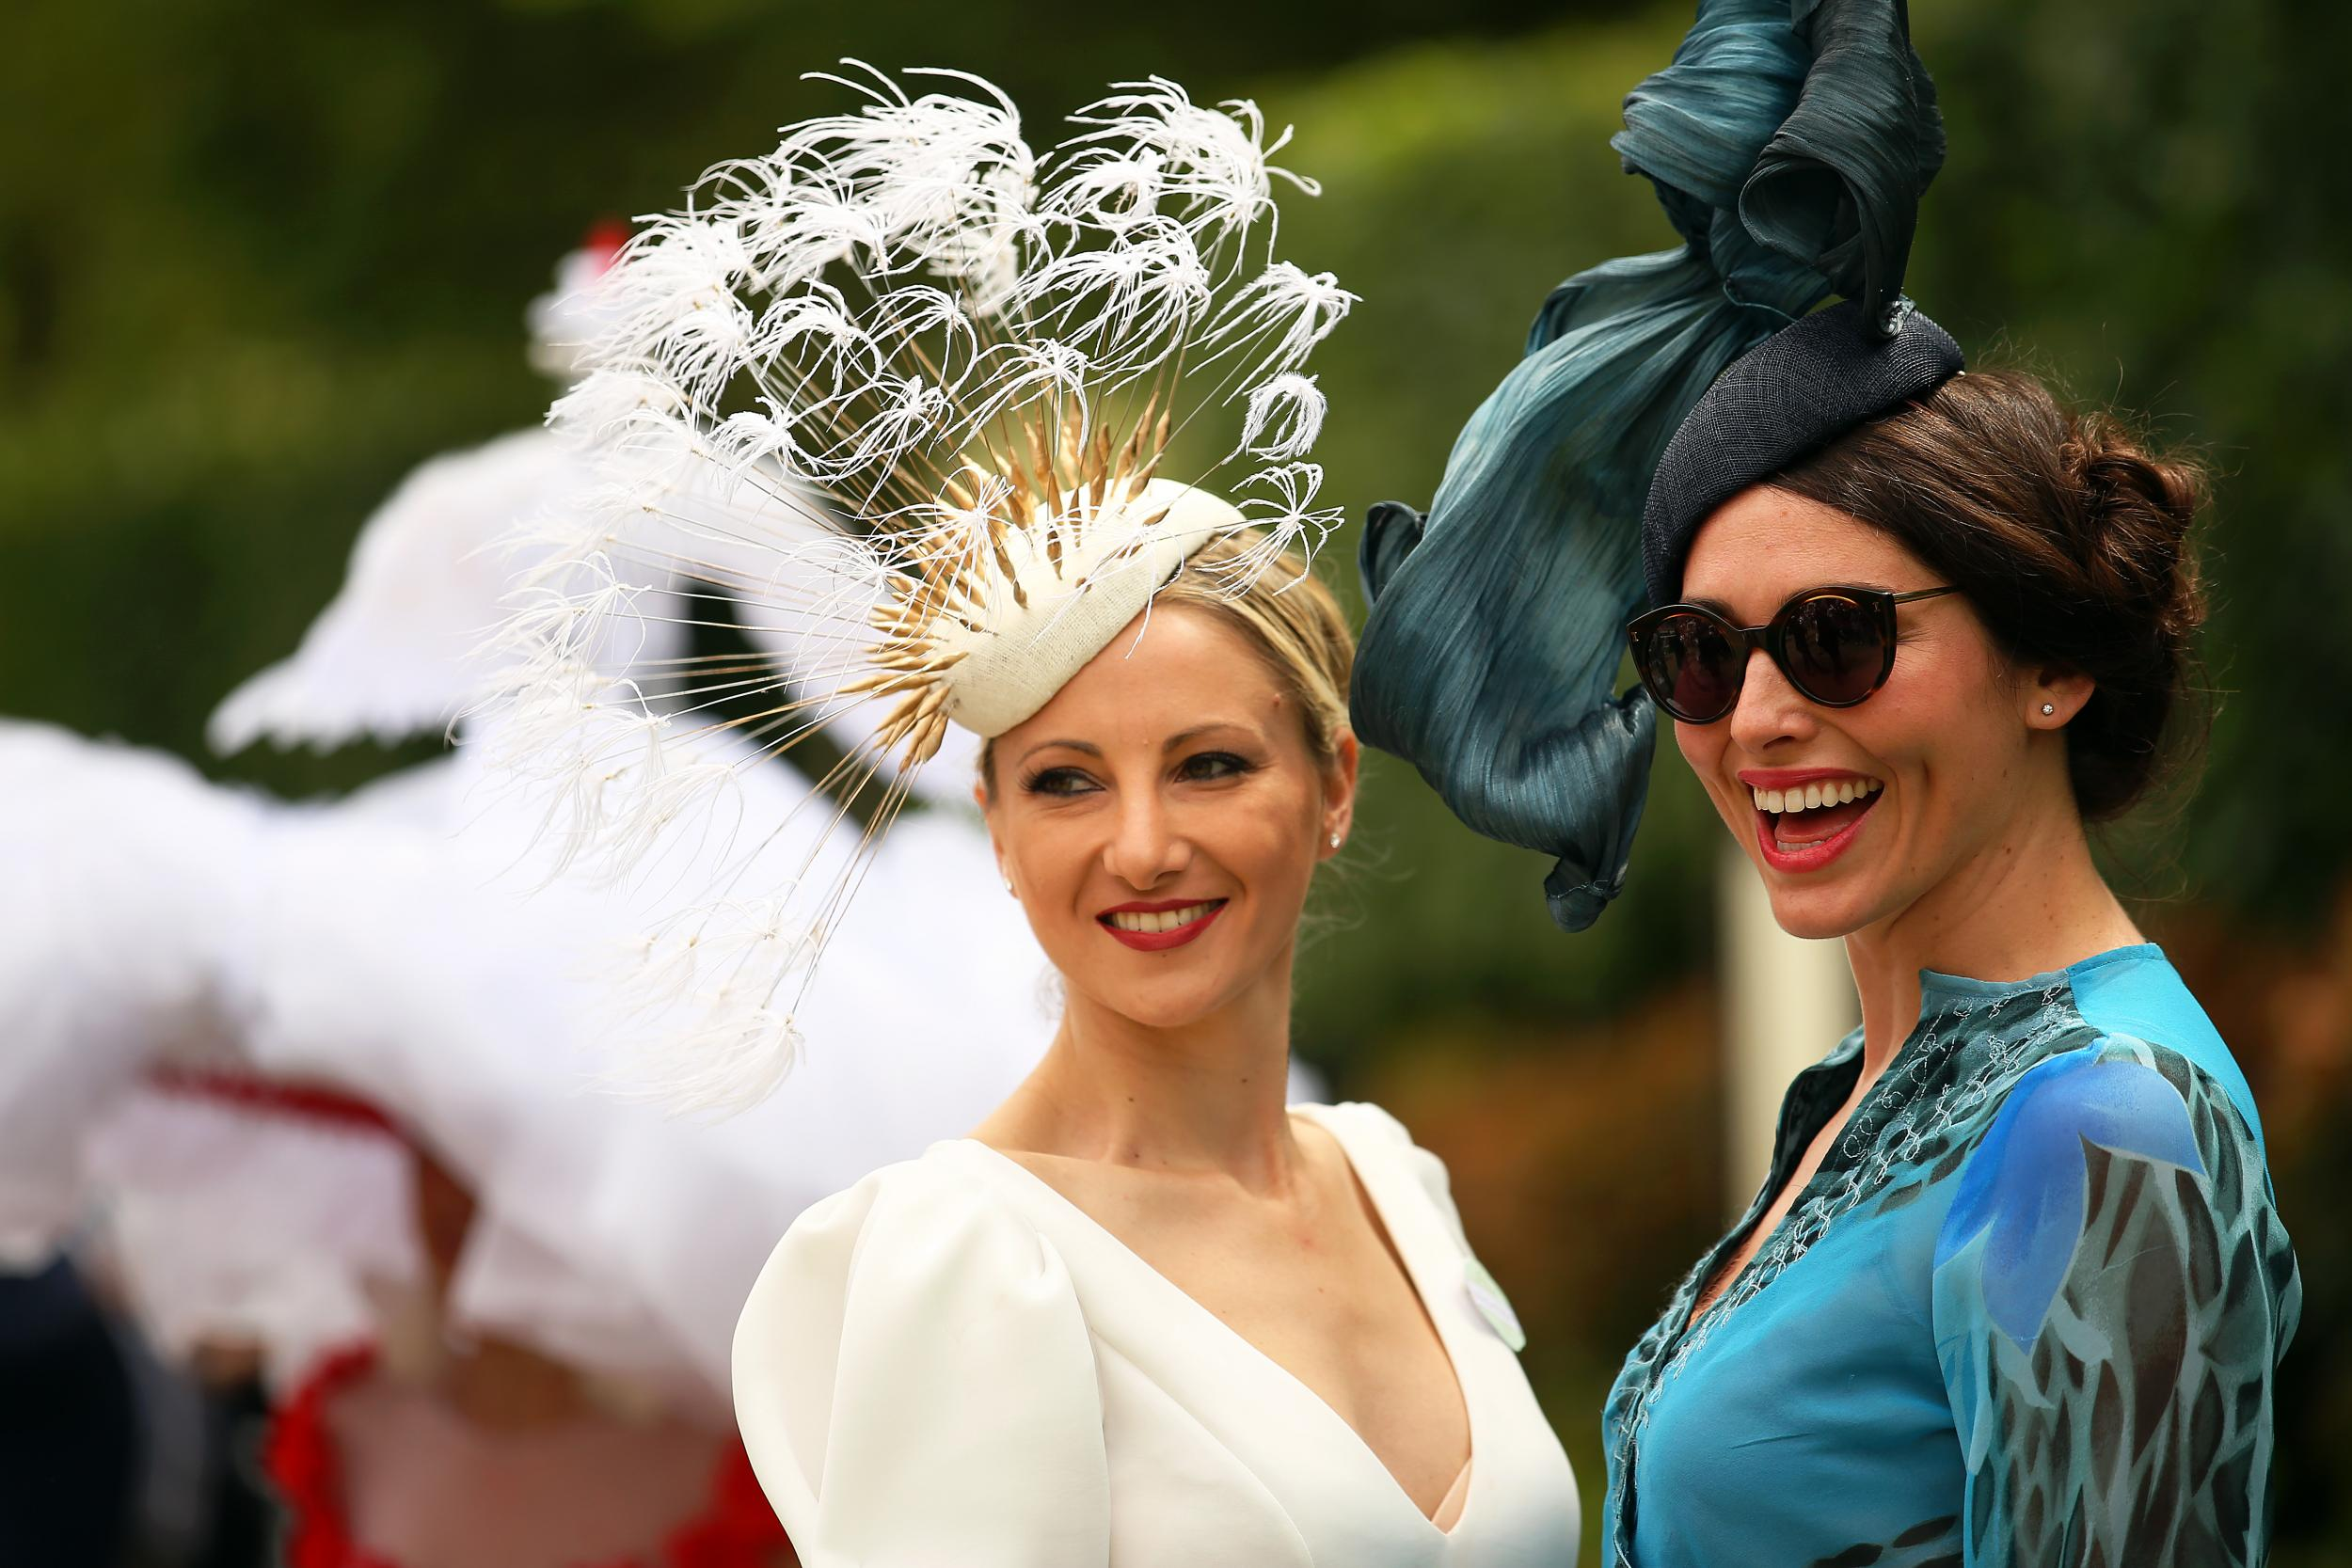 e602314d Royal Ascot dress code: What to wear at the racing event, according ...